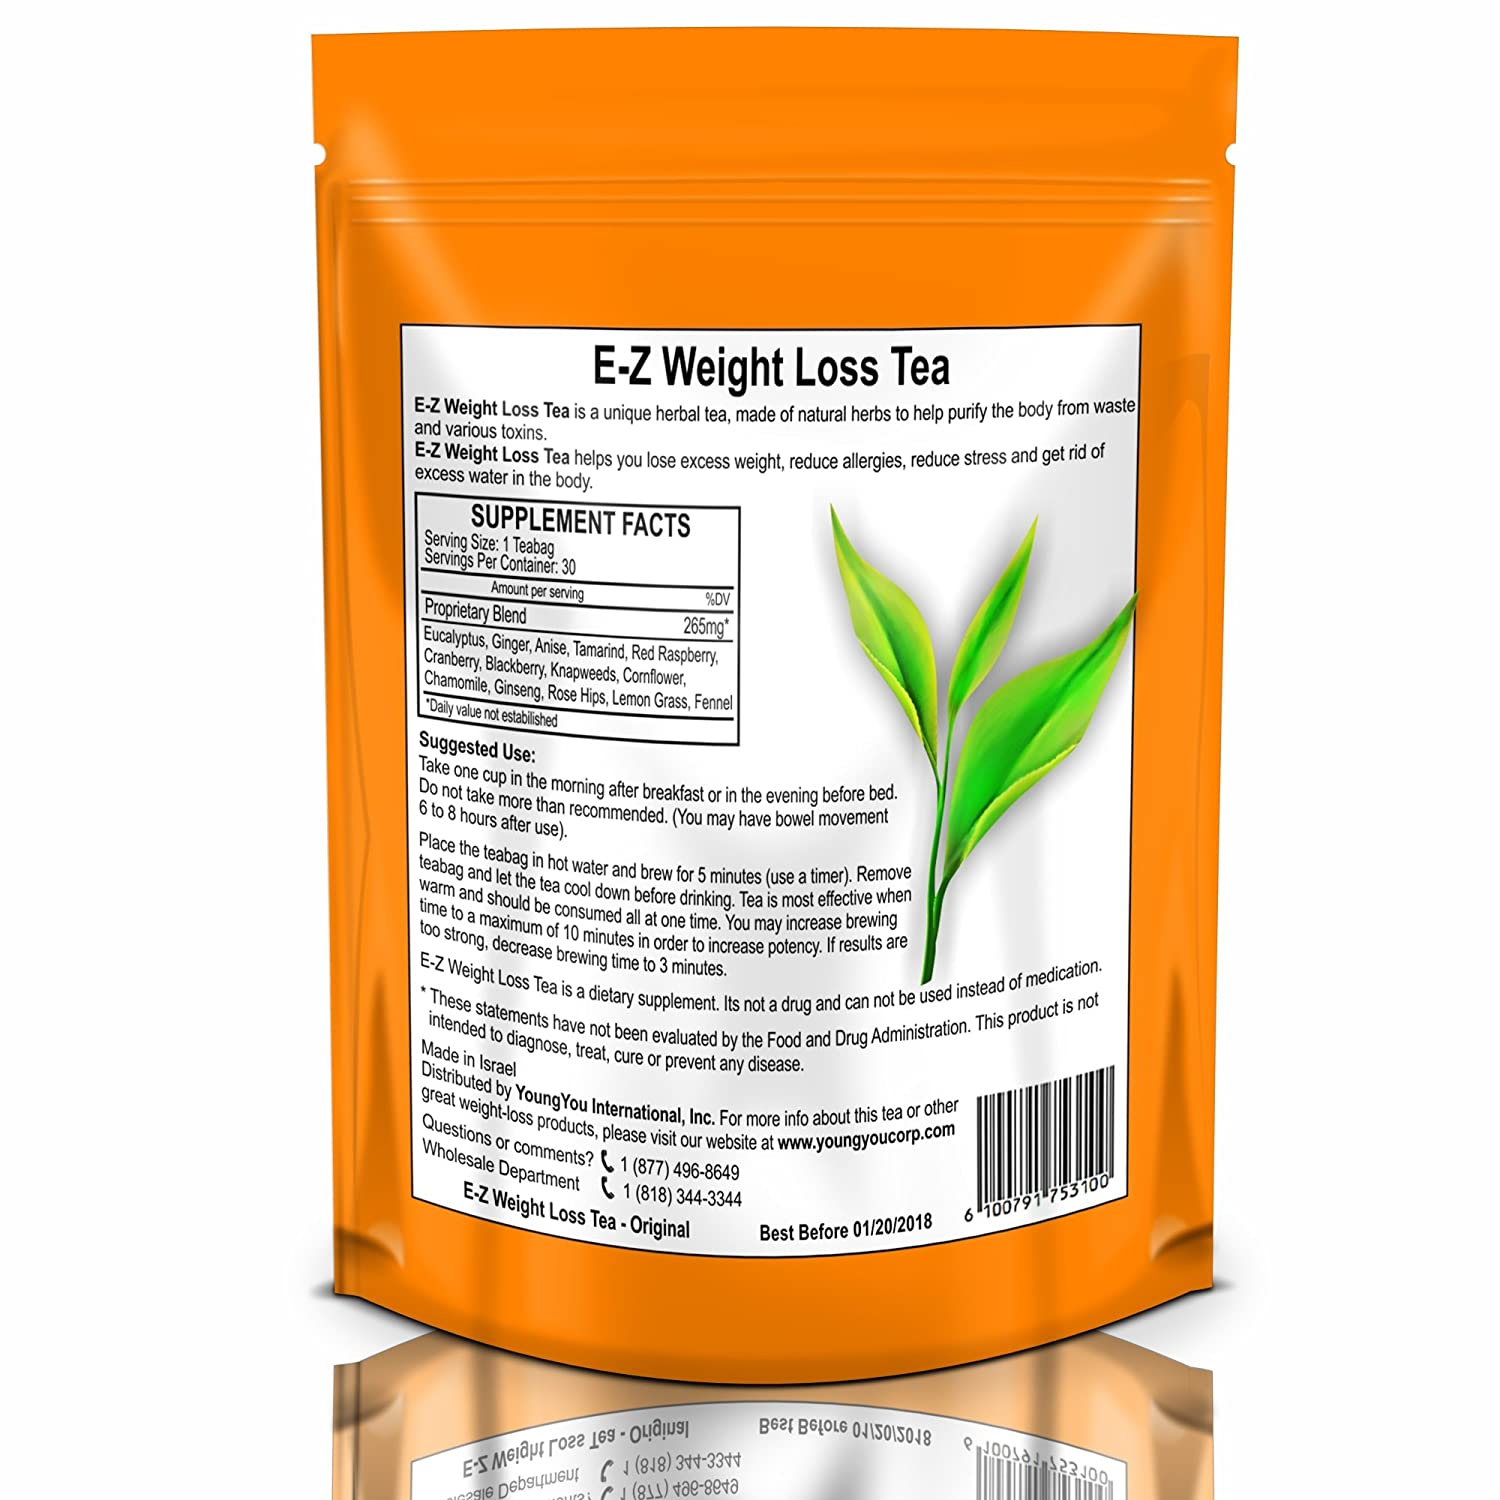 Great Herbal Products Weight Loss T Meizitang Slimming Tea Amazoncom Detox For And Belly Fat Appetite Control Body Cleanse Health Personal Care